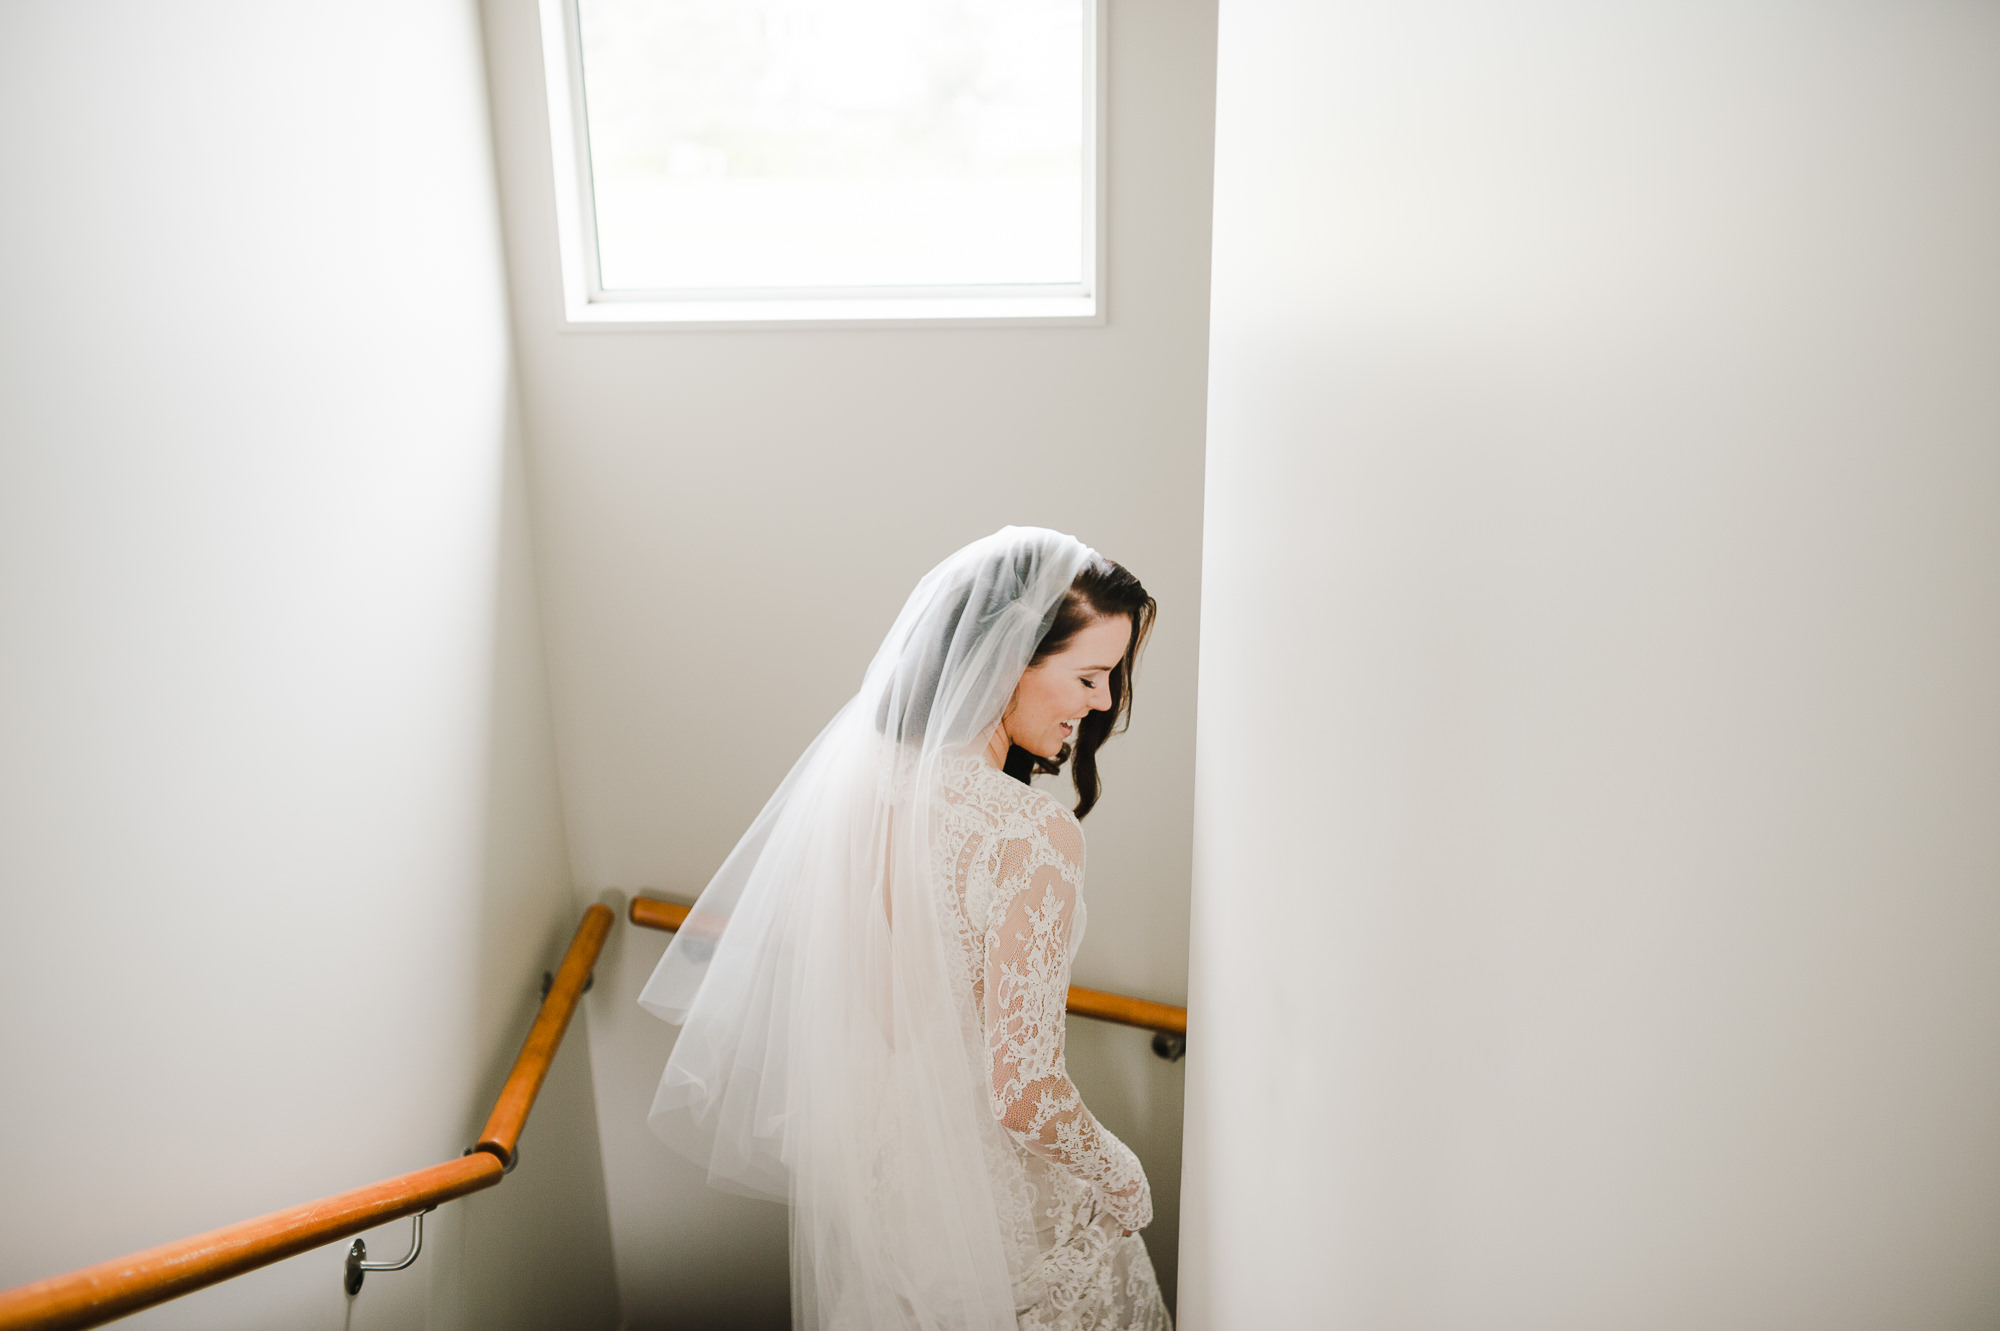 64A bride walking own stairway.JPG